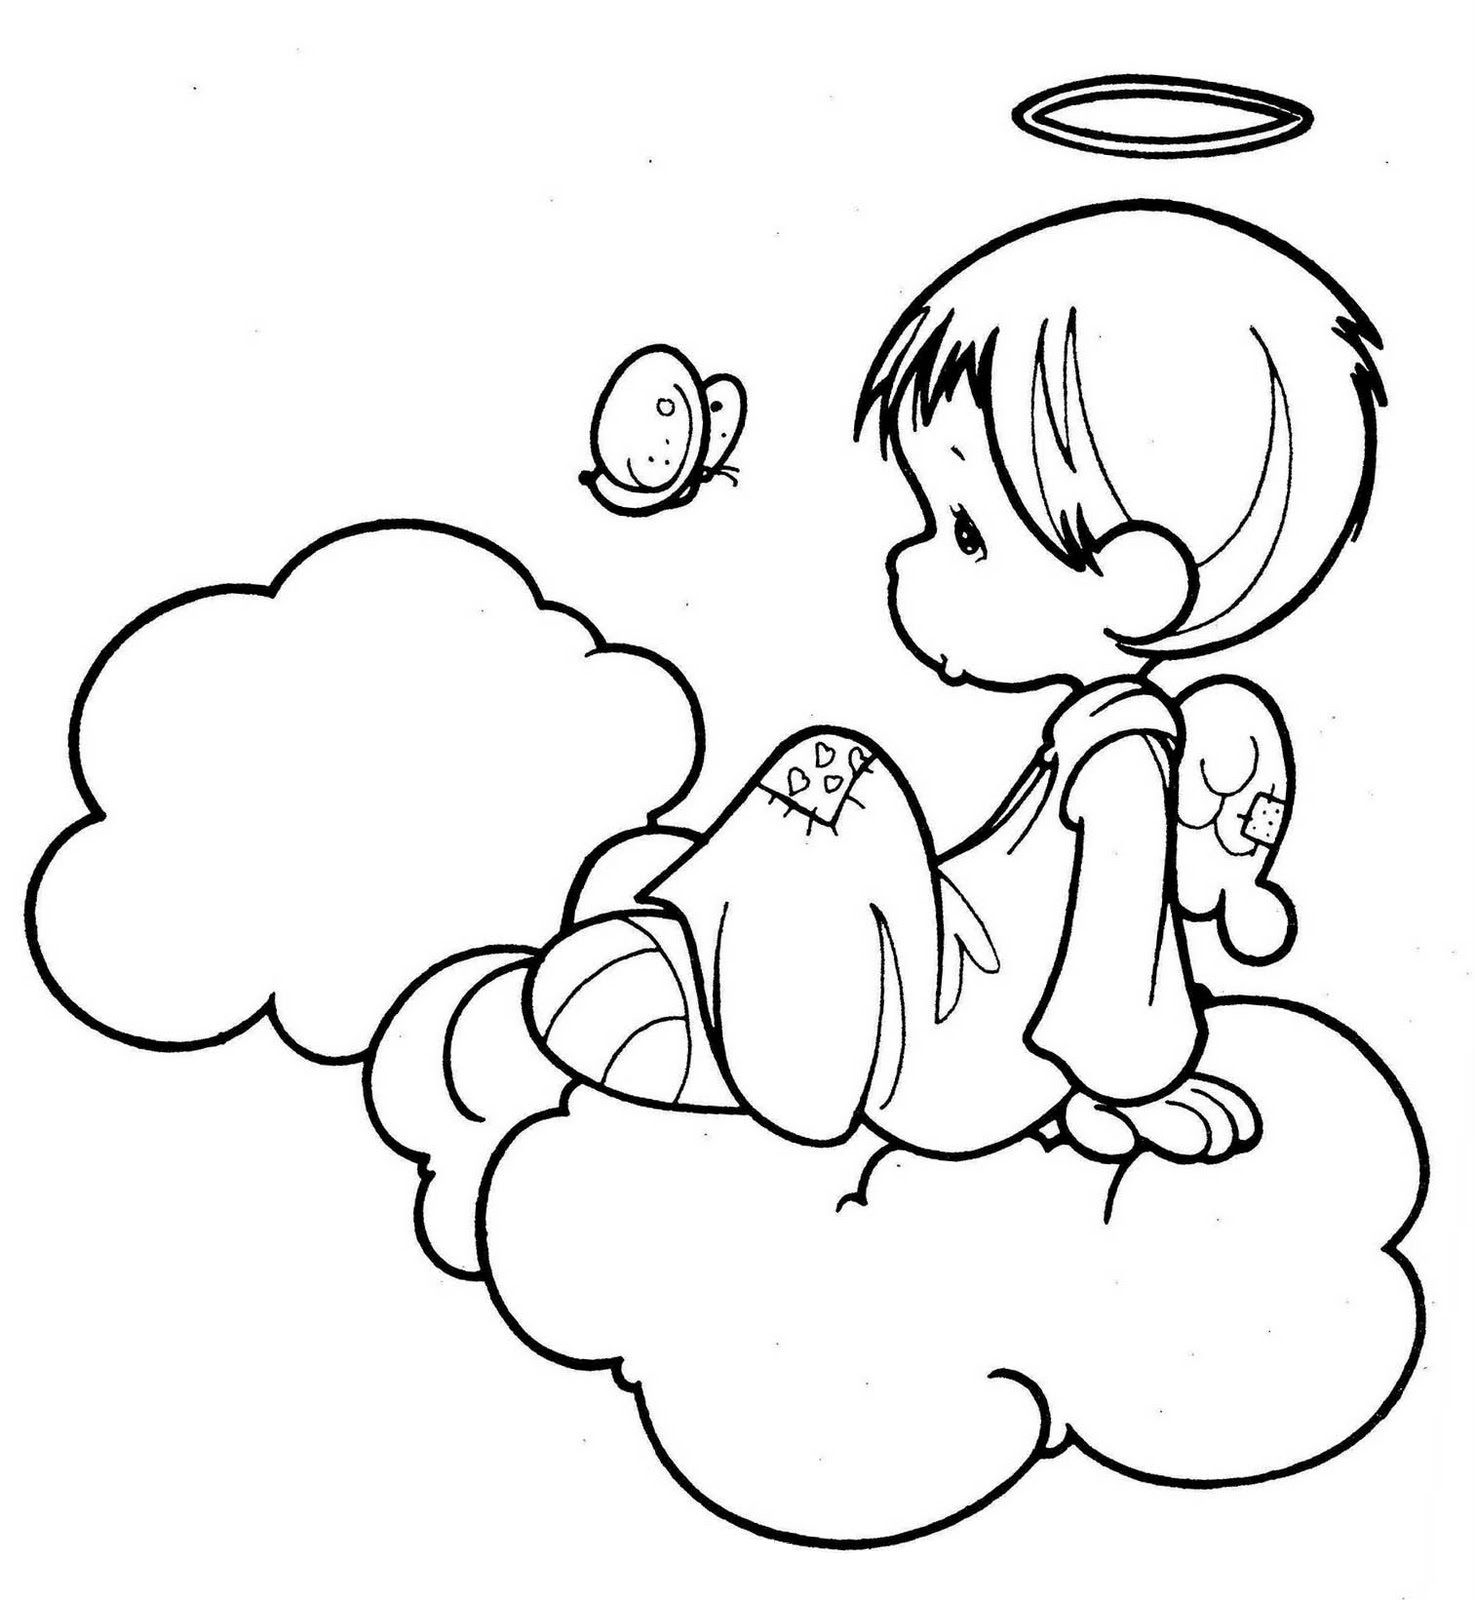 angel printable coloring pages | Printable Coloring Pages: Angel ...